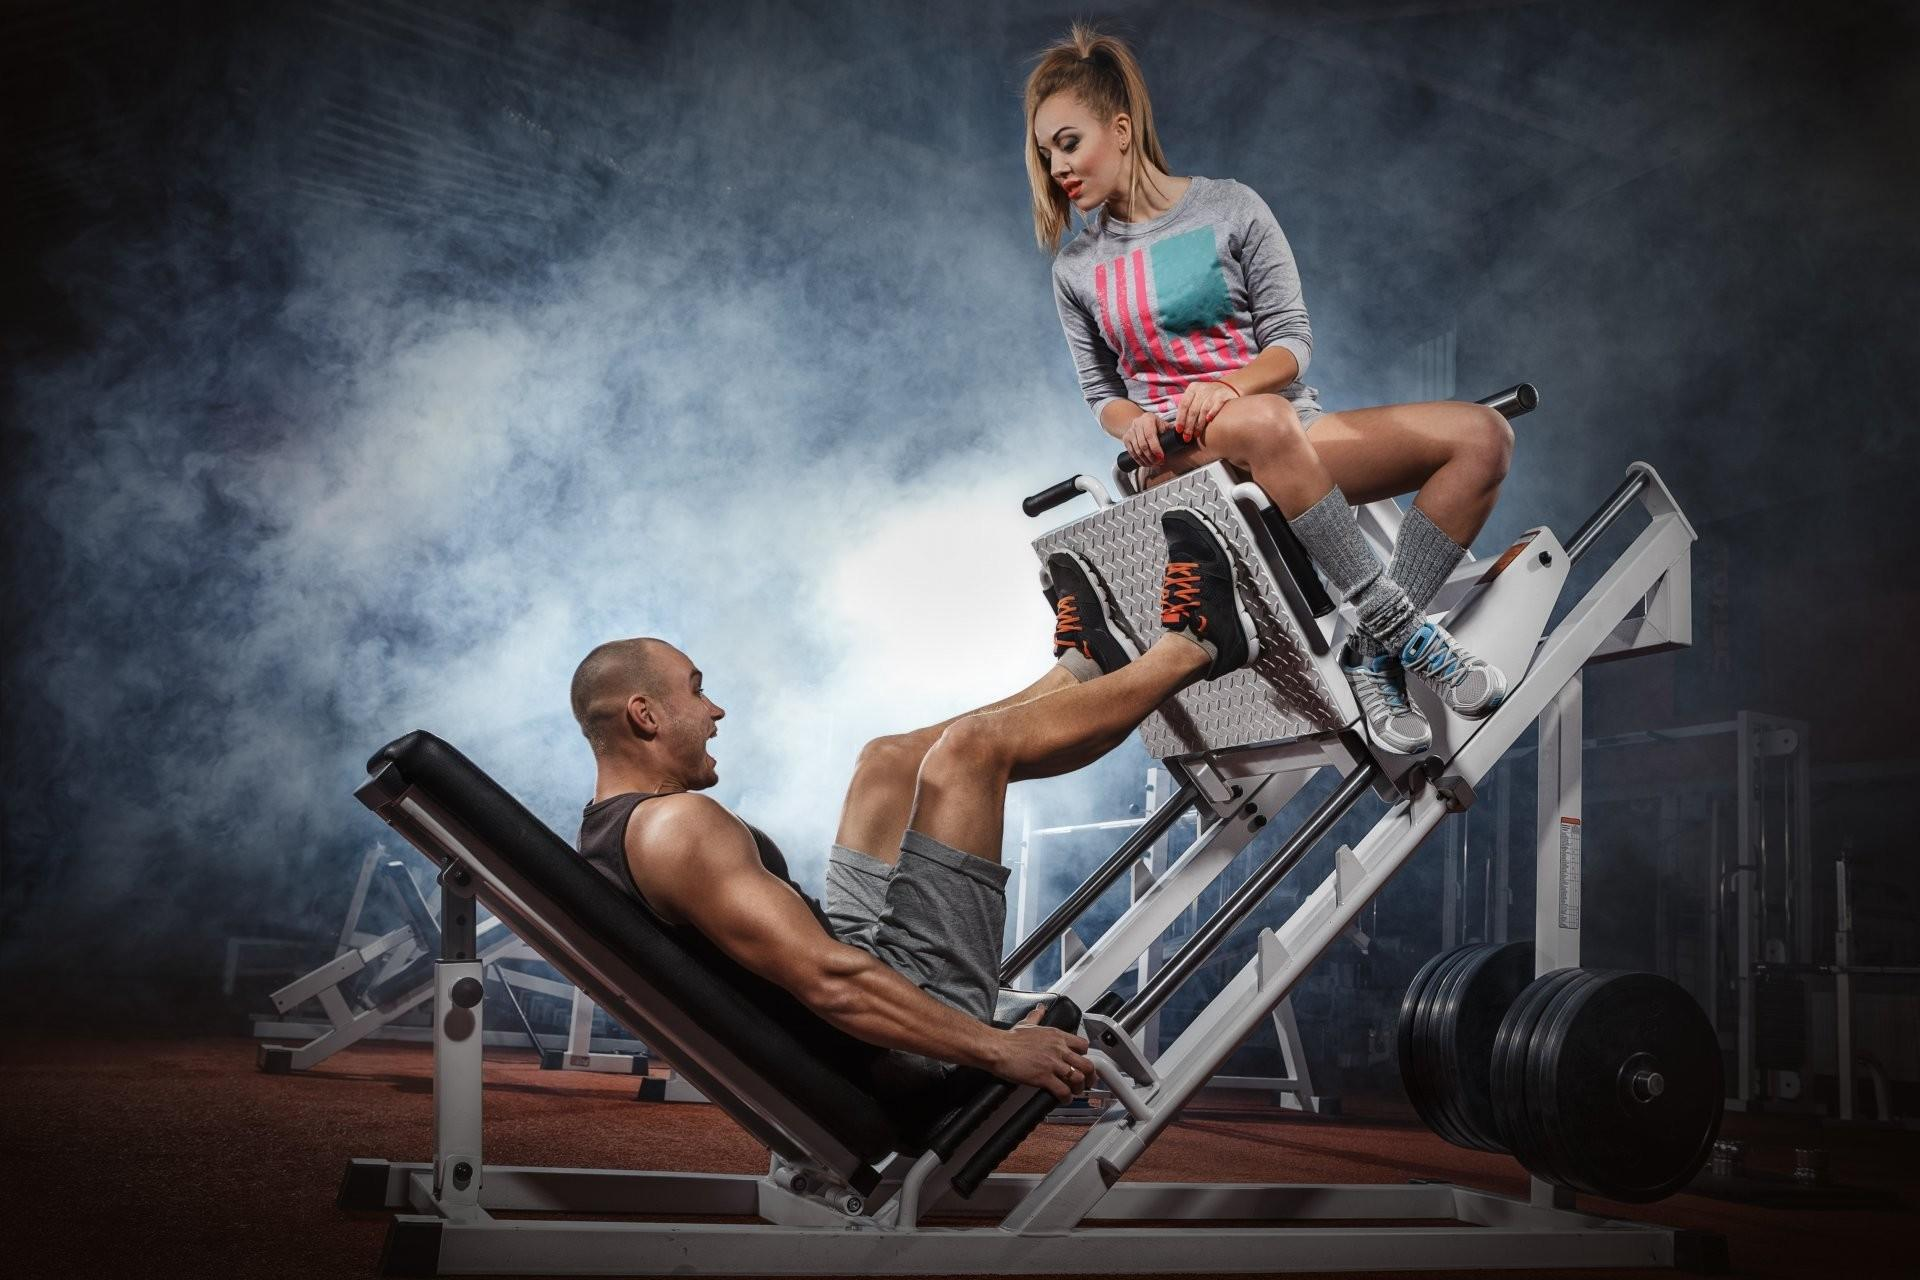 Gym Couple Wallpapers Wallpaper Cave